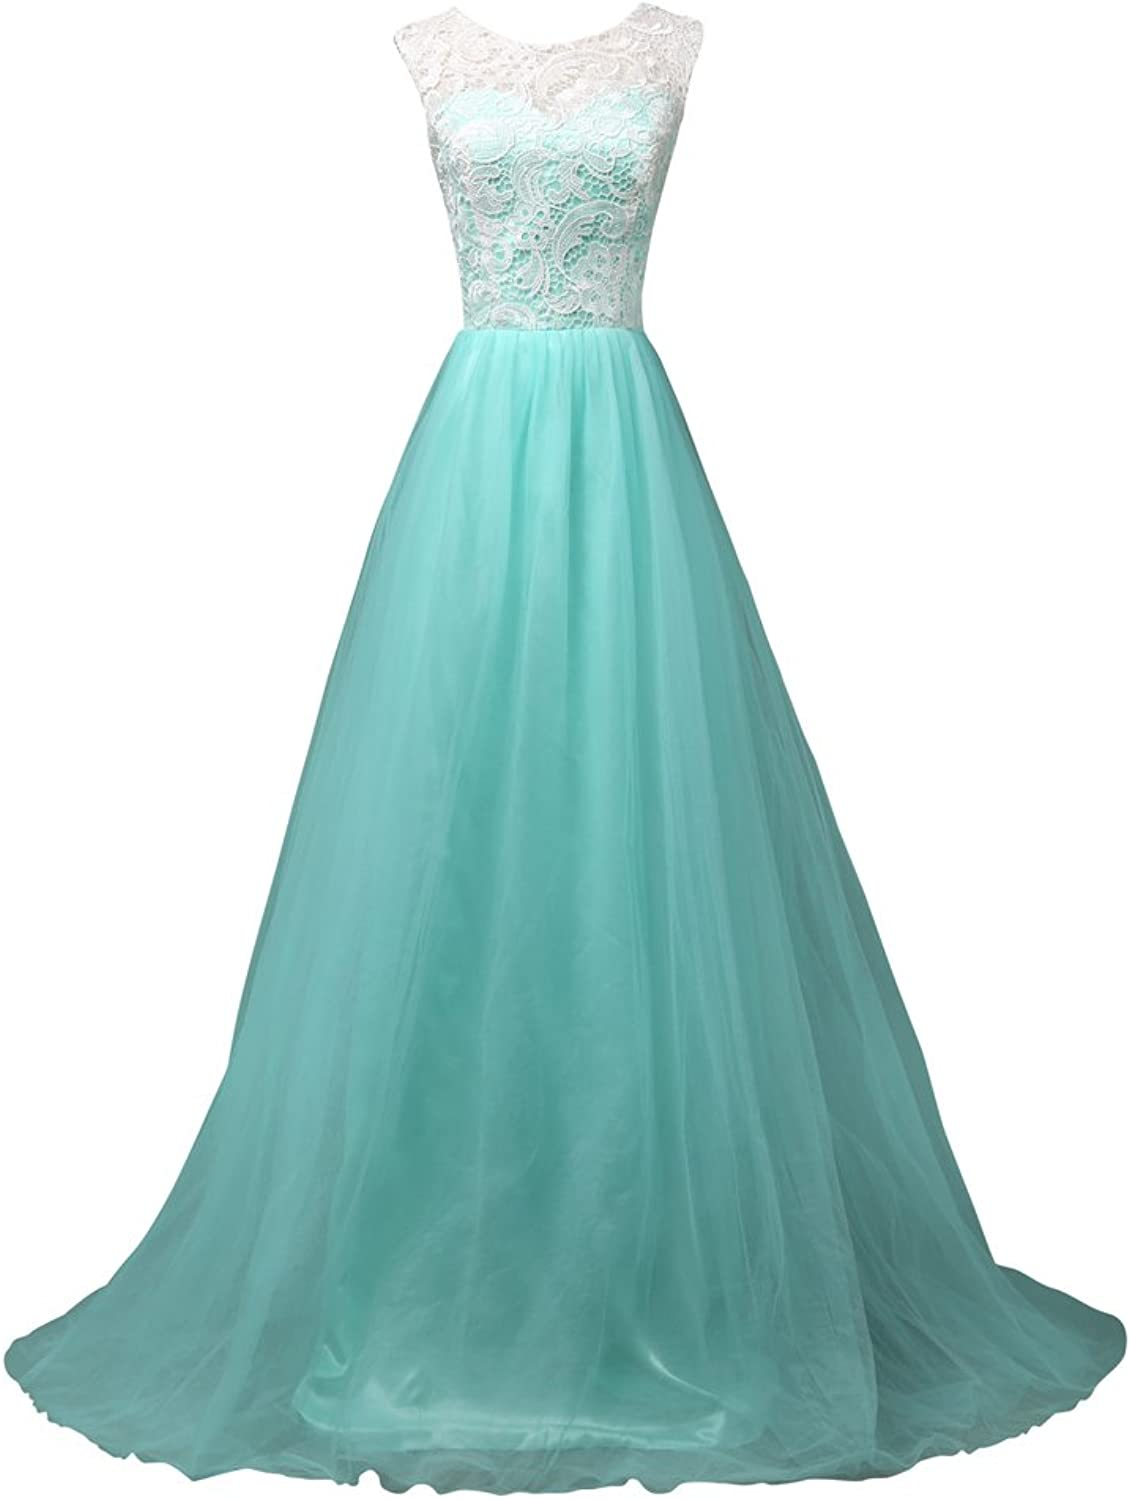 Bonnie clothing Women's Lace and Tulle Mint Green Puffy Evening Party Prom Dress